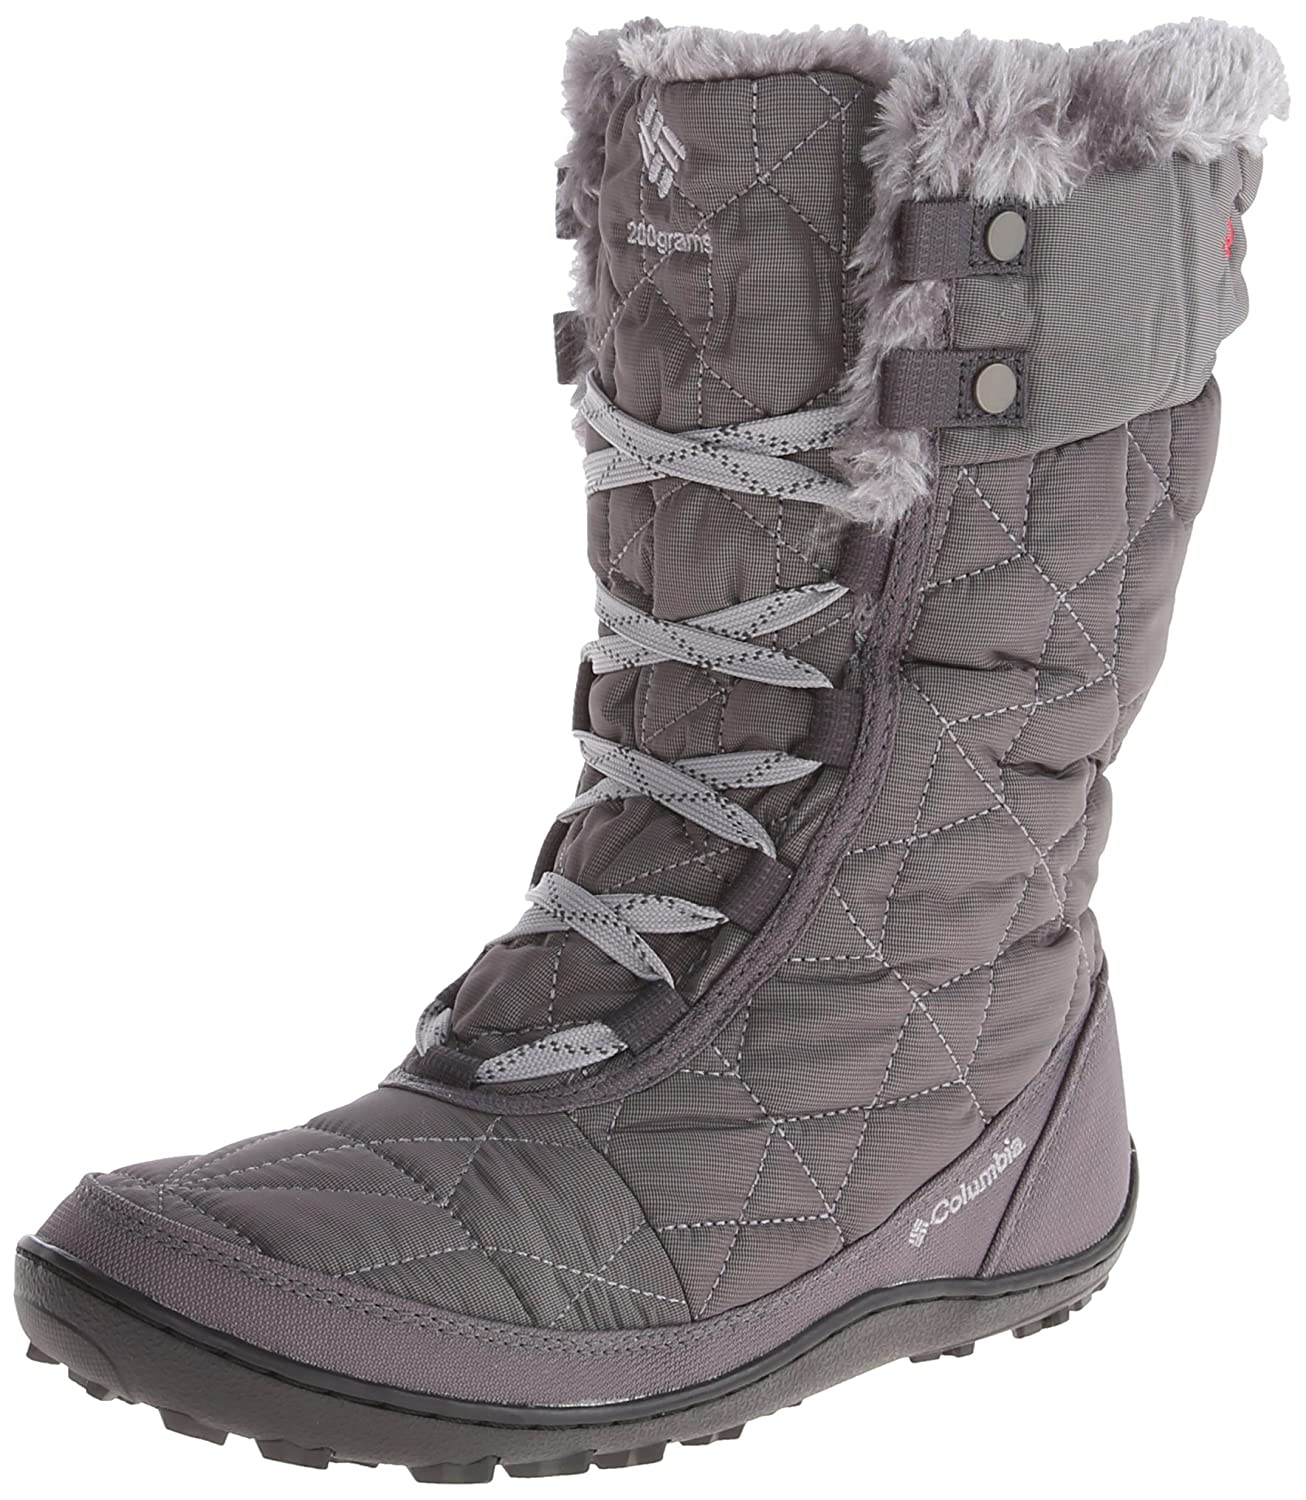 Columbia Women's Minx Mid II Omni-Heat Winter Boot B00GW8GNBY 6.5 B(M) US|Shale, Bright Red